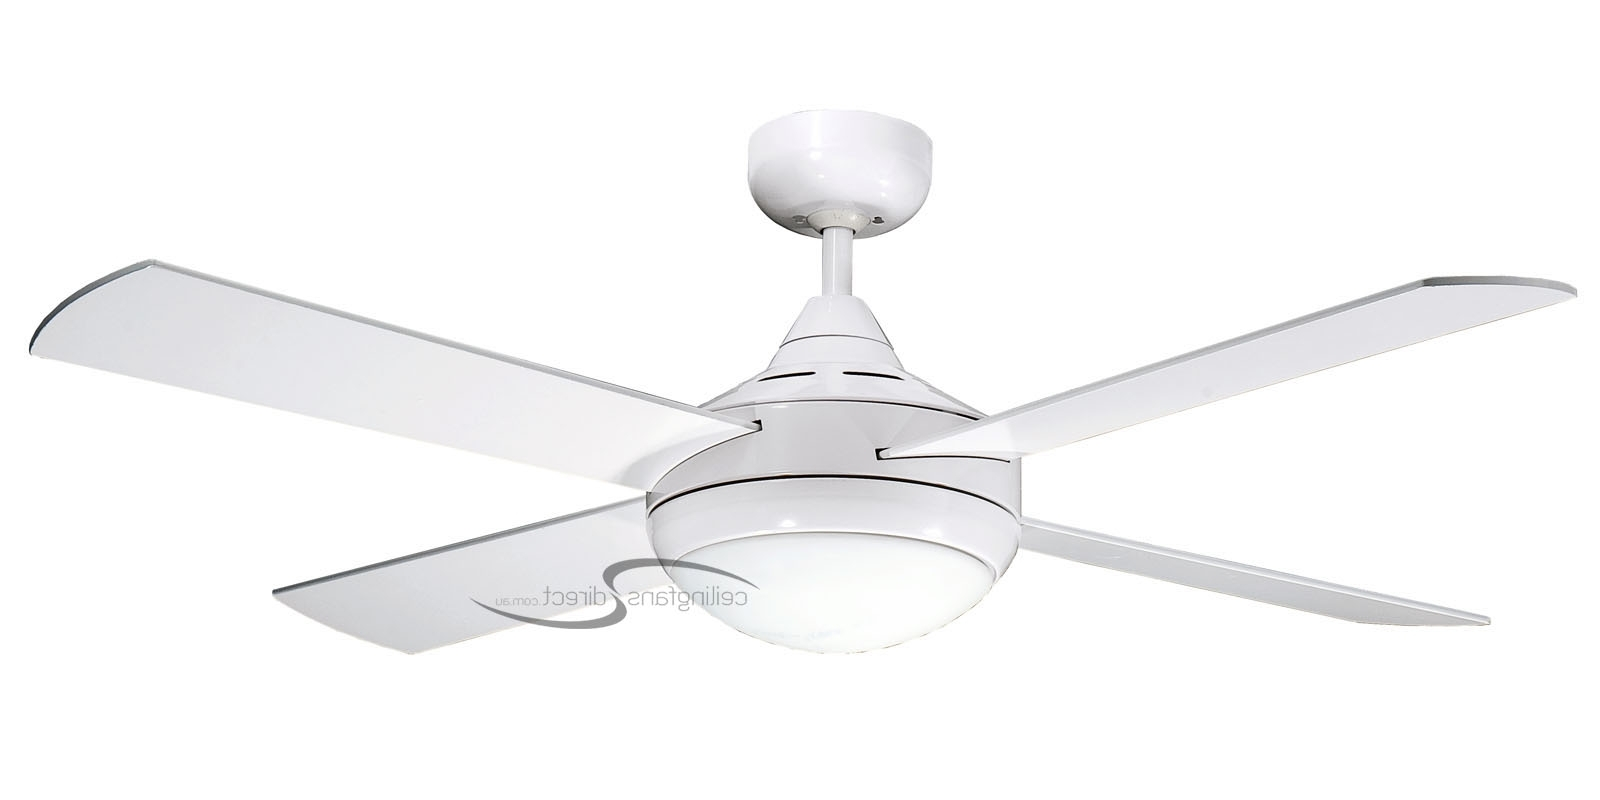 Most Popular Outdoor Ceiling Fans With Lights And Remote Control Intended For White Ceiling Fans With Lights And Remote Control Perfect Outdoor (View 11 of 20)